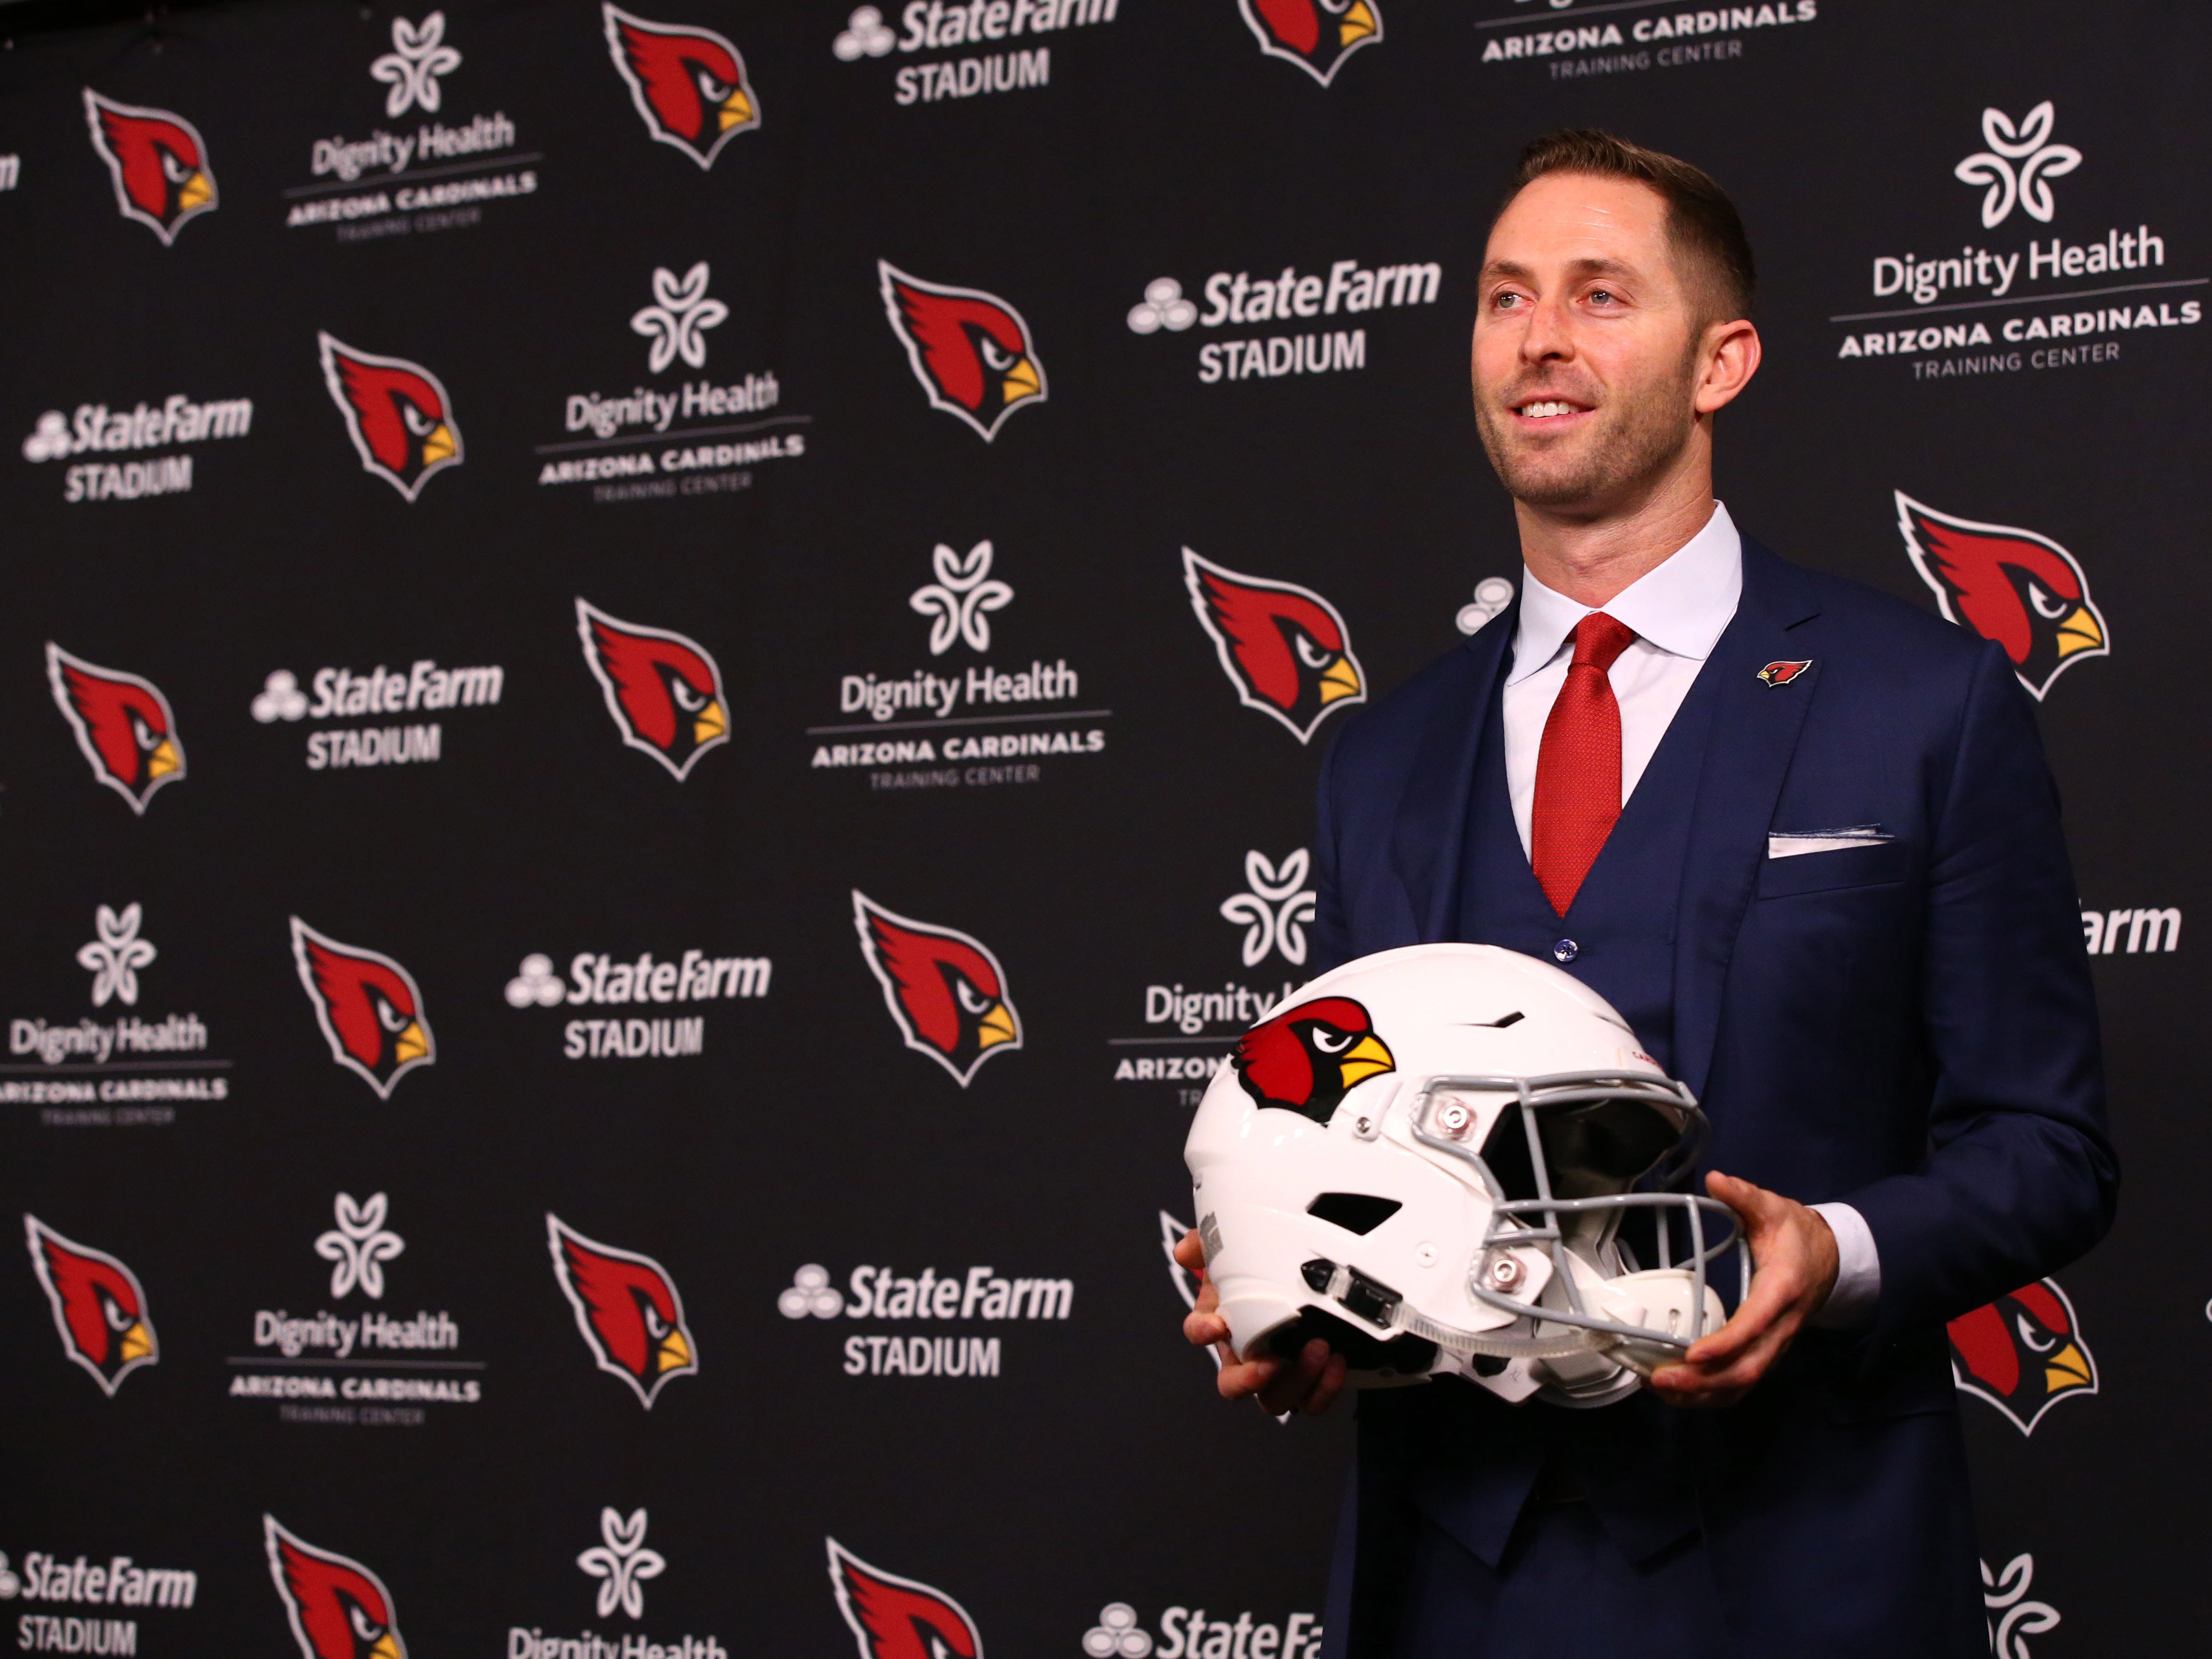 30. Cardinals (30): Kliff Kingsbury inherits team with potential for quick-ish turnaround, but his dearth of pro experience could beimpediment to early success.